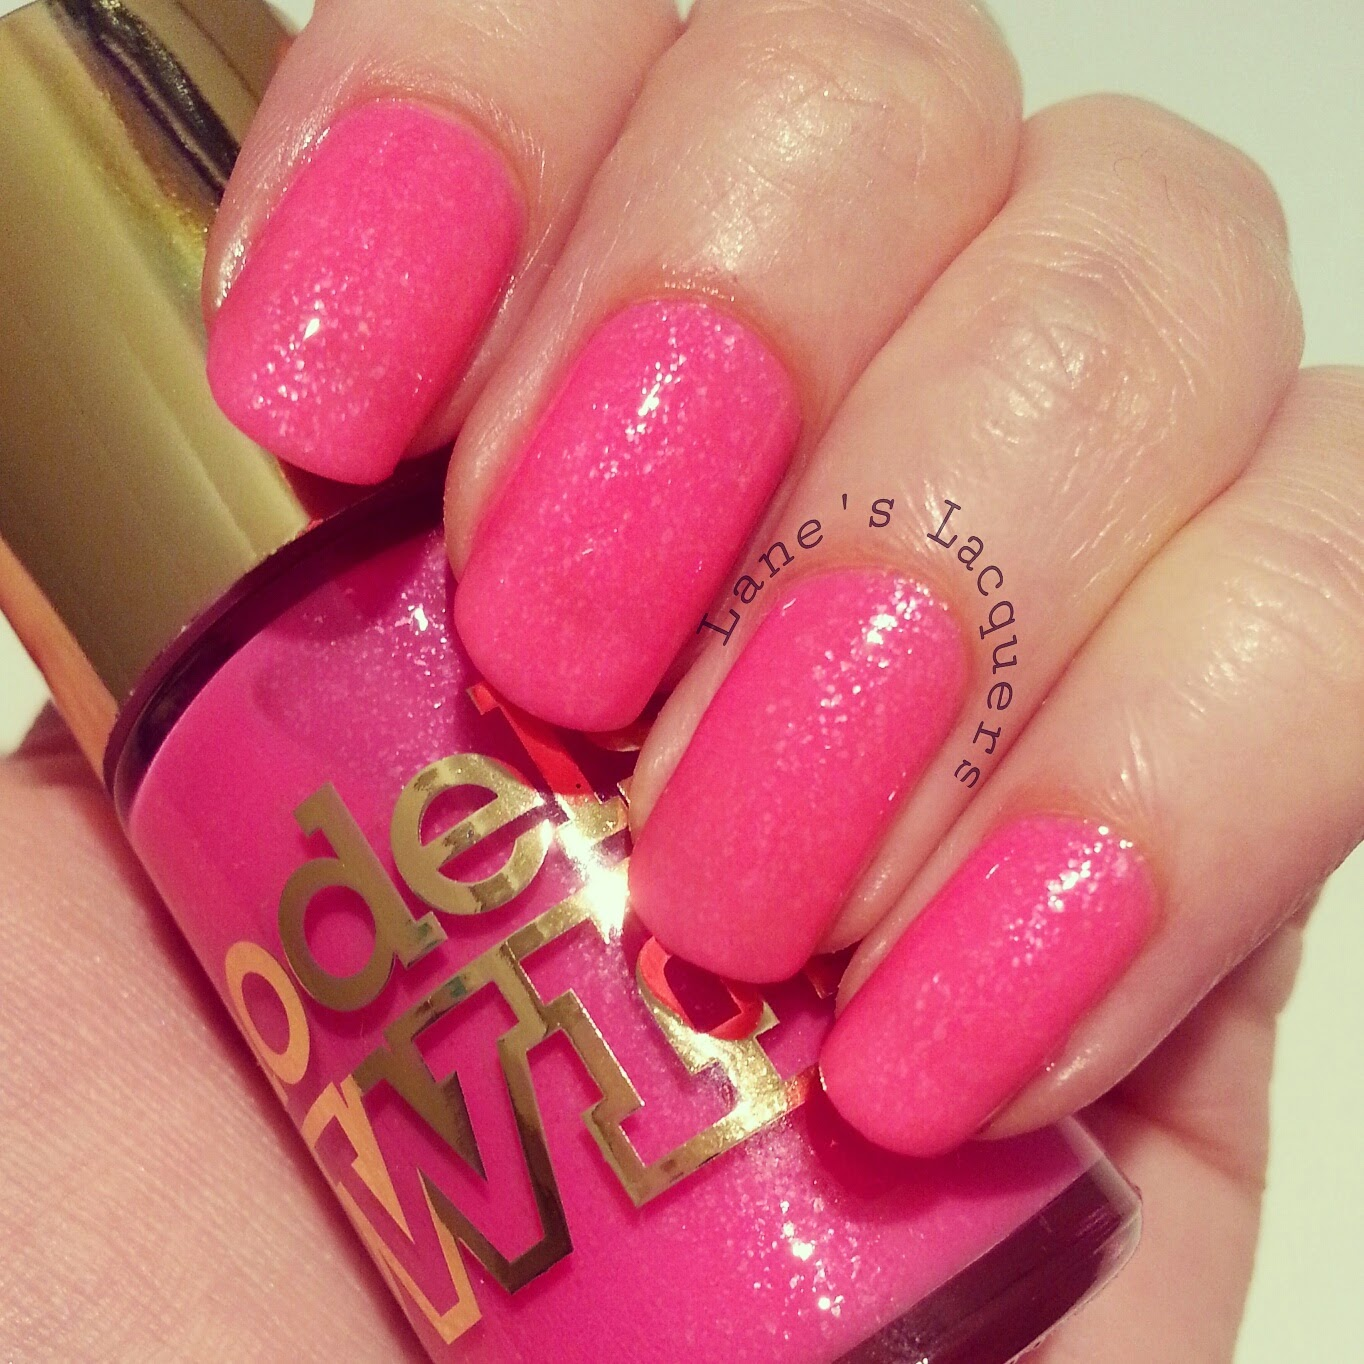 new-models-own-luxe-collection-radiant-pink-swatch-nails